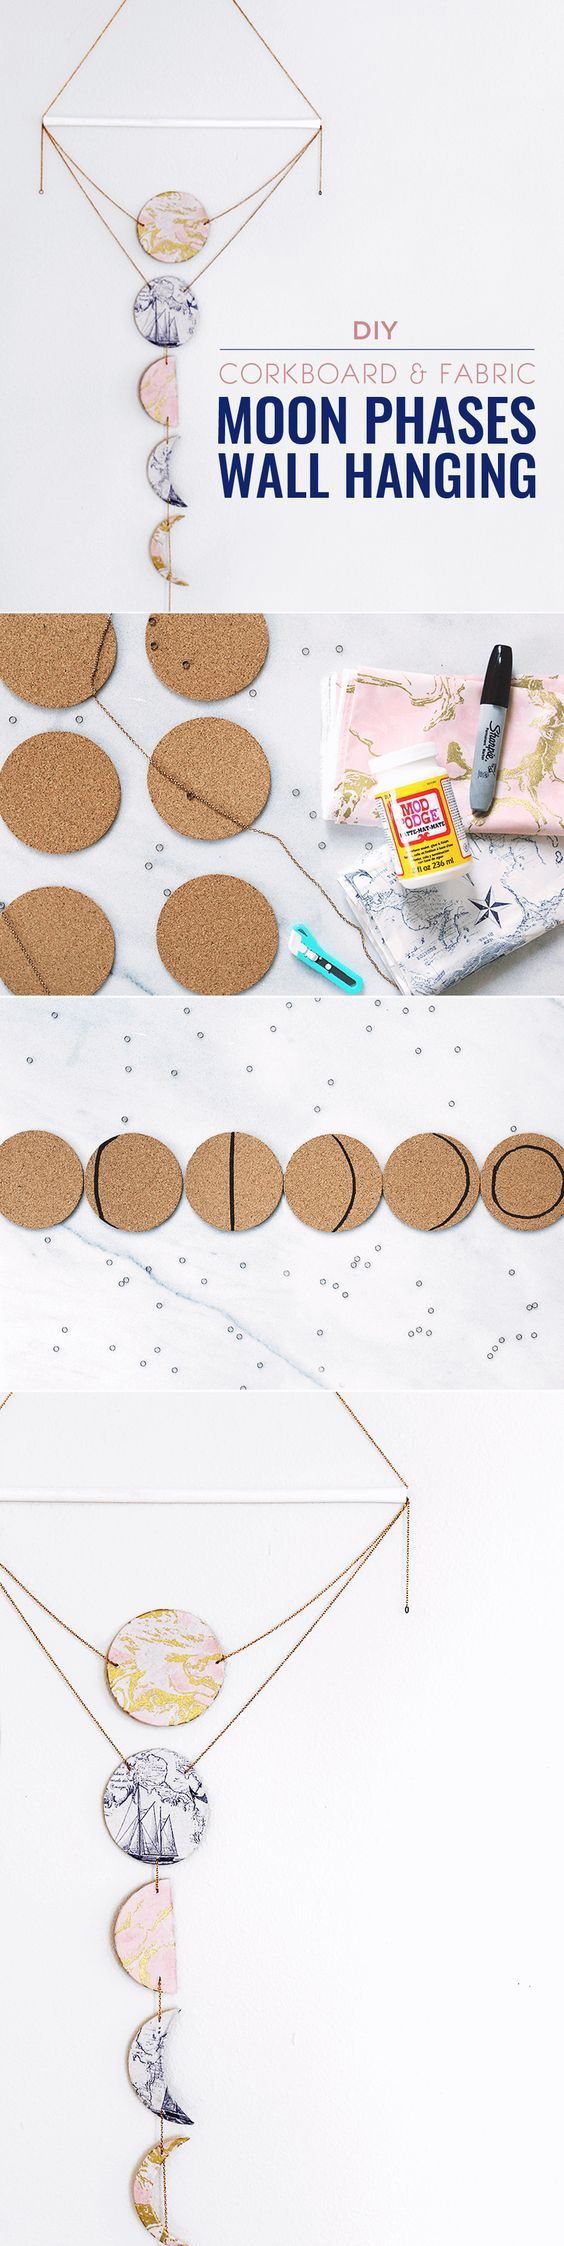 I absolutely love this new spin on the moon phases wall hanging it this diy moon phases wall hanging is fun and unique bring in a bit of the night sky with a wall hanging that looks professional even if you did do it solutioingenieria Gallery